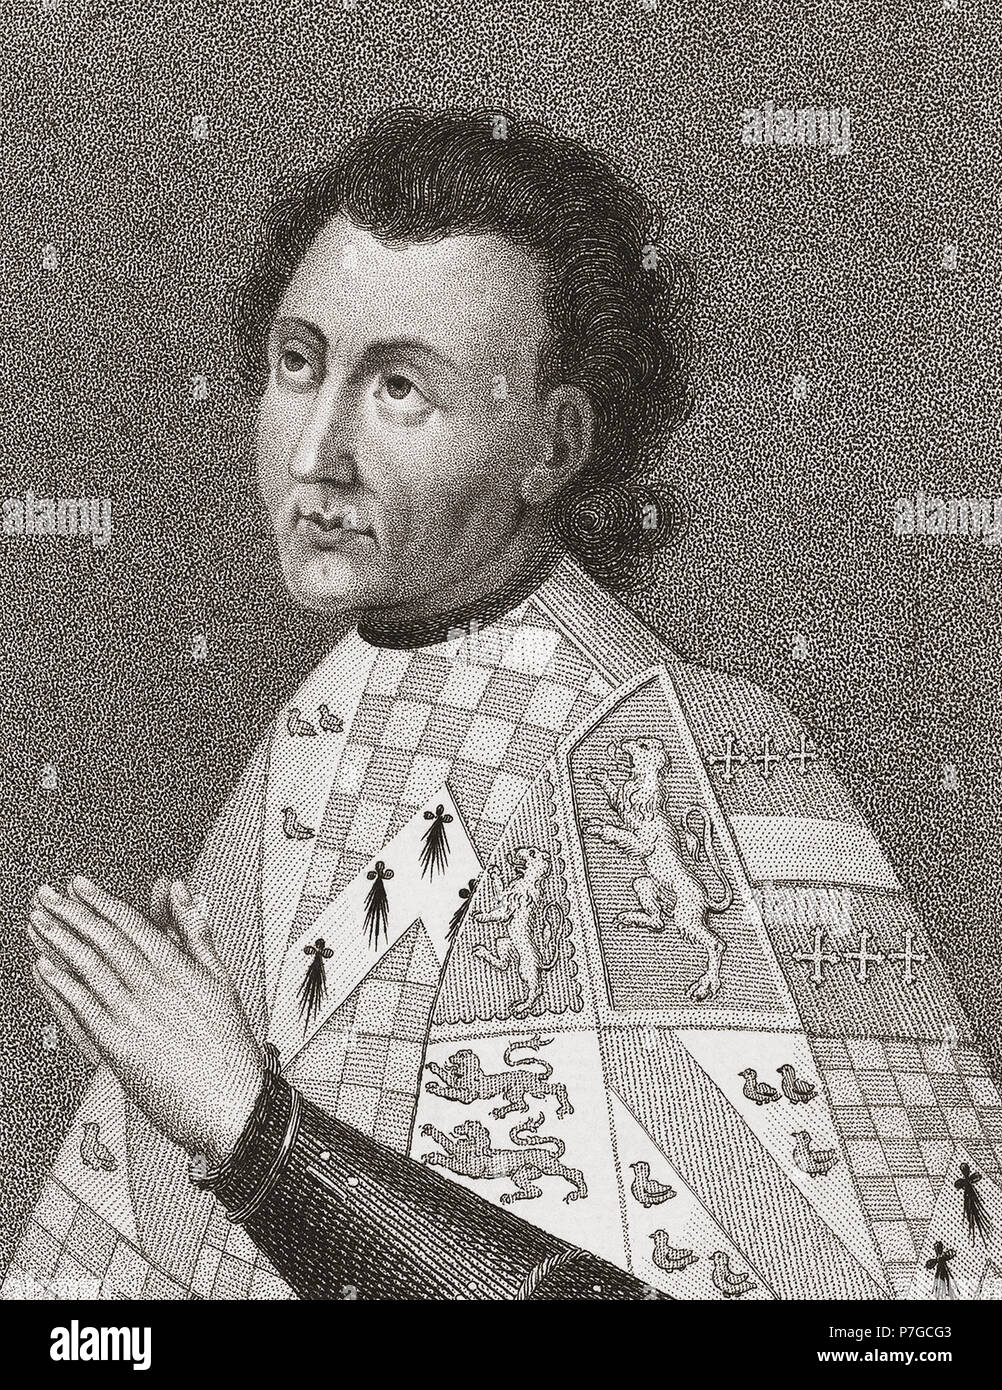 John Talbot, 1st Earl of Shrewsbury and 1st Earl of Waterford KG, 1384/1387 – 1453.  English military commander during Hundred Years War, Lord Lieutenant of Ireland, Constable of France. - Stock Image